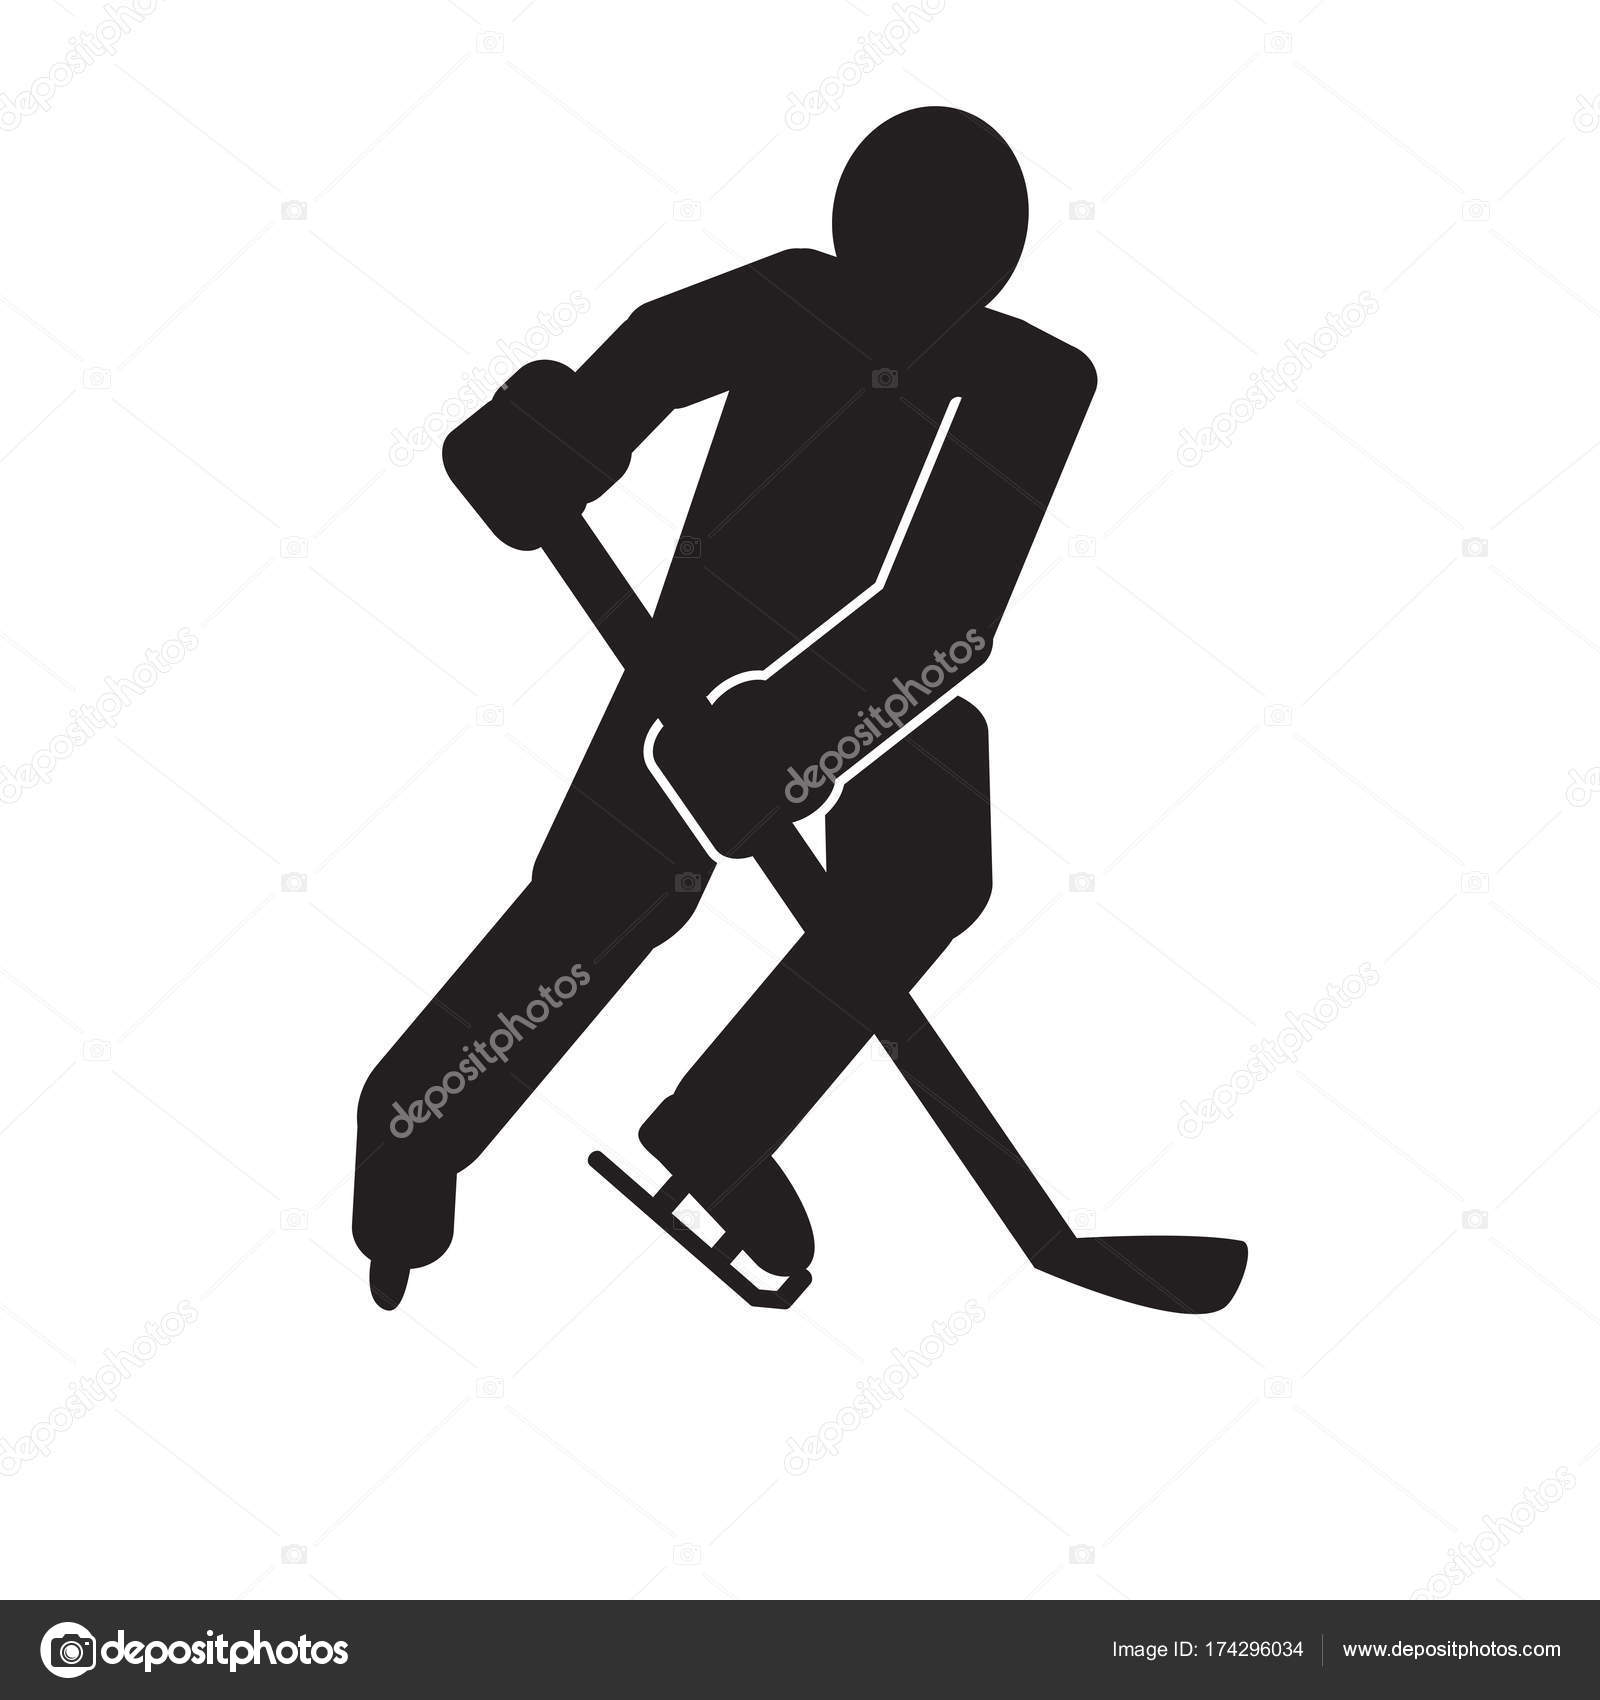 Abstract hockey symbol stock vector jokalar01 174296034 abstract hockey symbol isolated on white background vector illustration vector by jokalar01 biocorpaavc Image collections